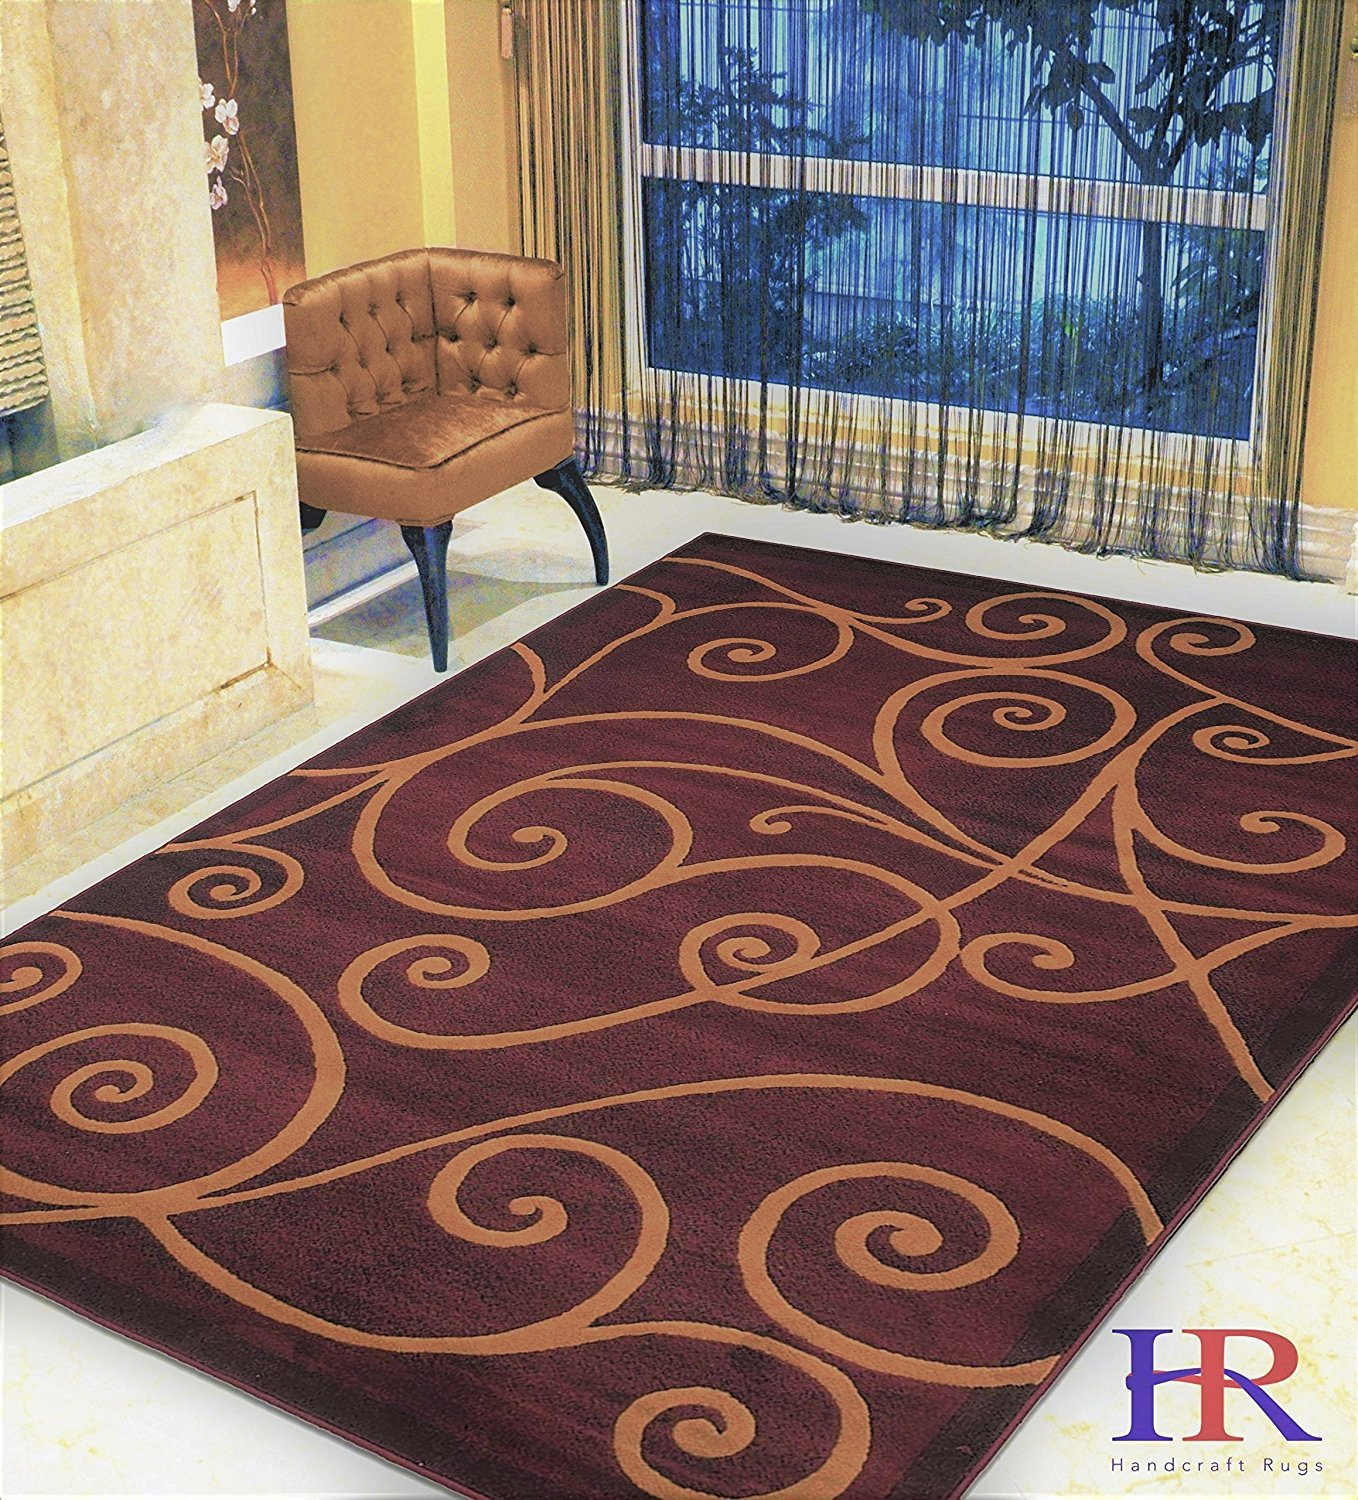 Modern Contemporary Area Rugs-Abstract Wavy Swirls -Shed Free Burgundy Red/Beige/Ivory/Black